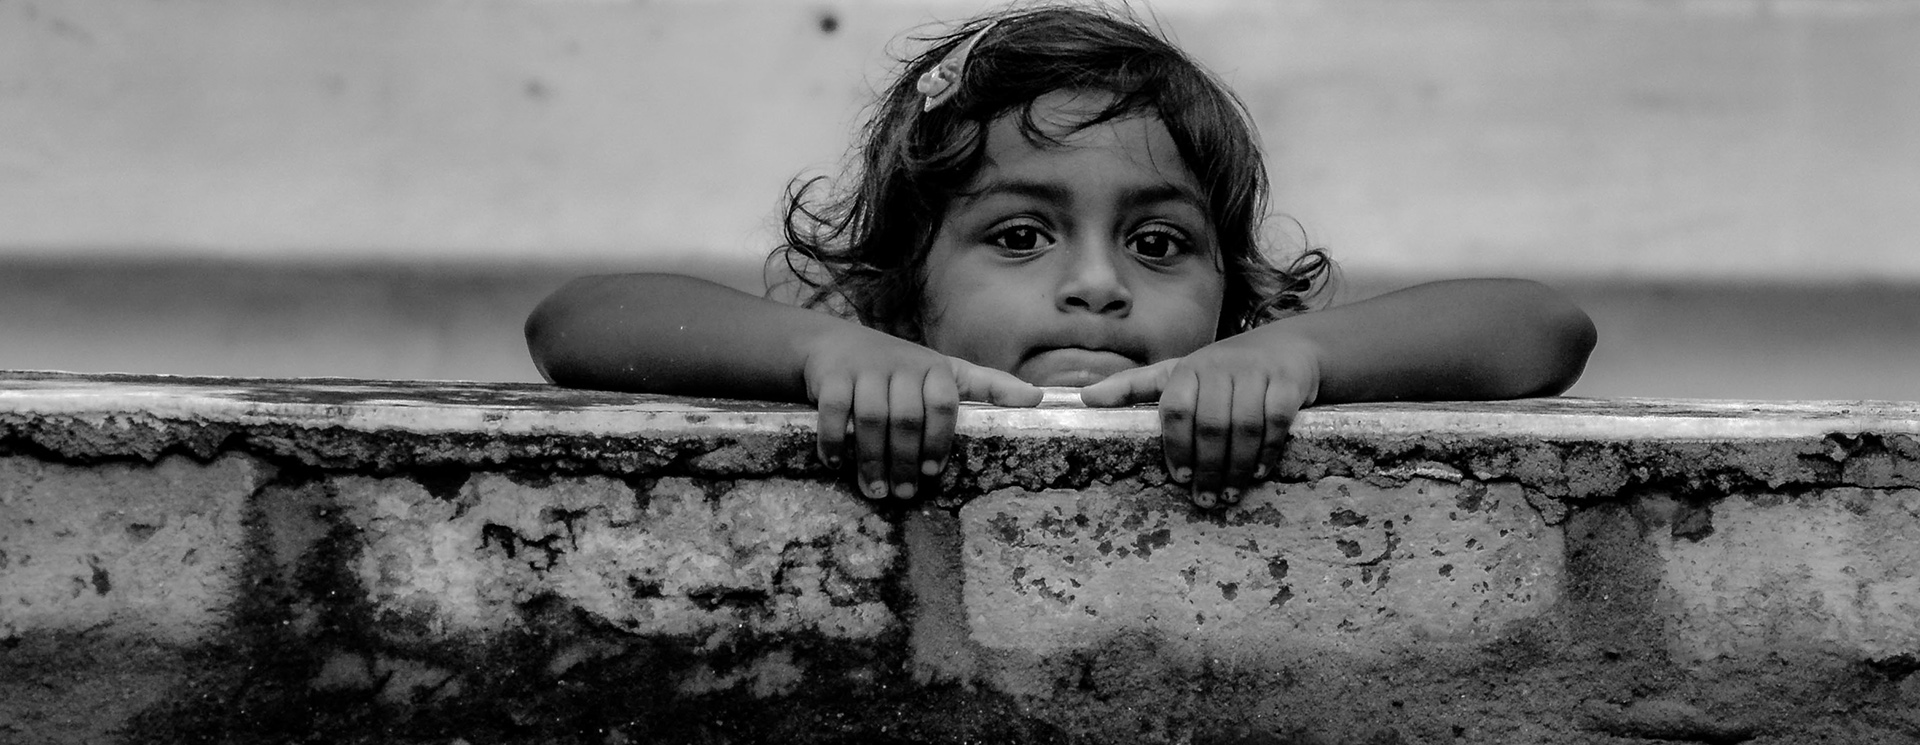 One must look into the eyes of a child as his/her eyes can tell you much more than you expect.